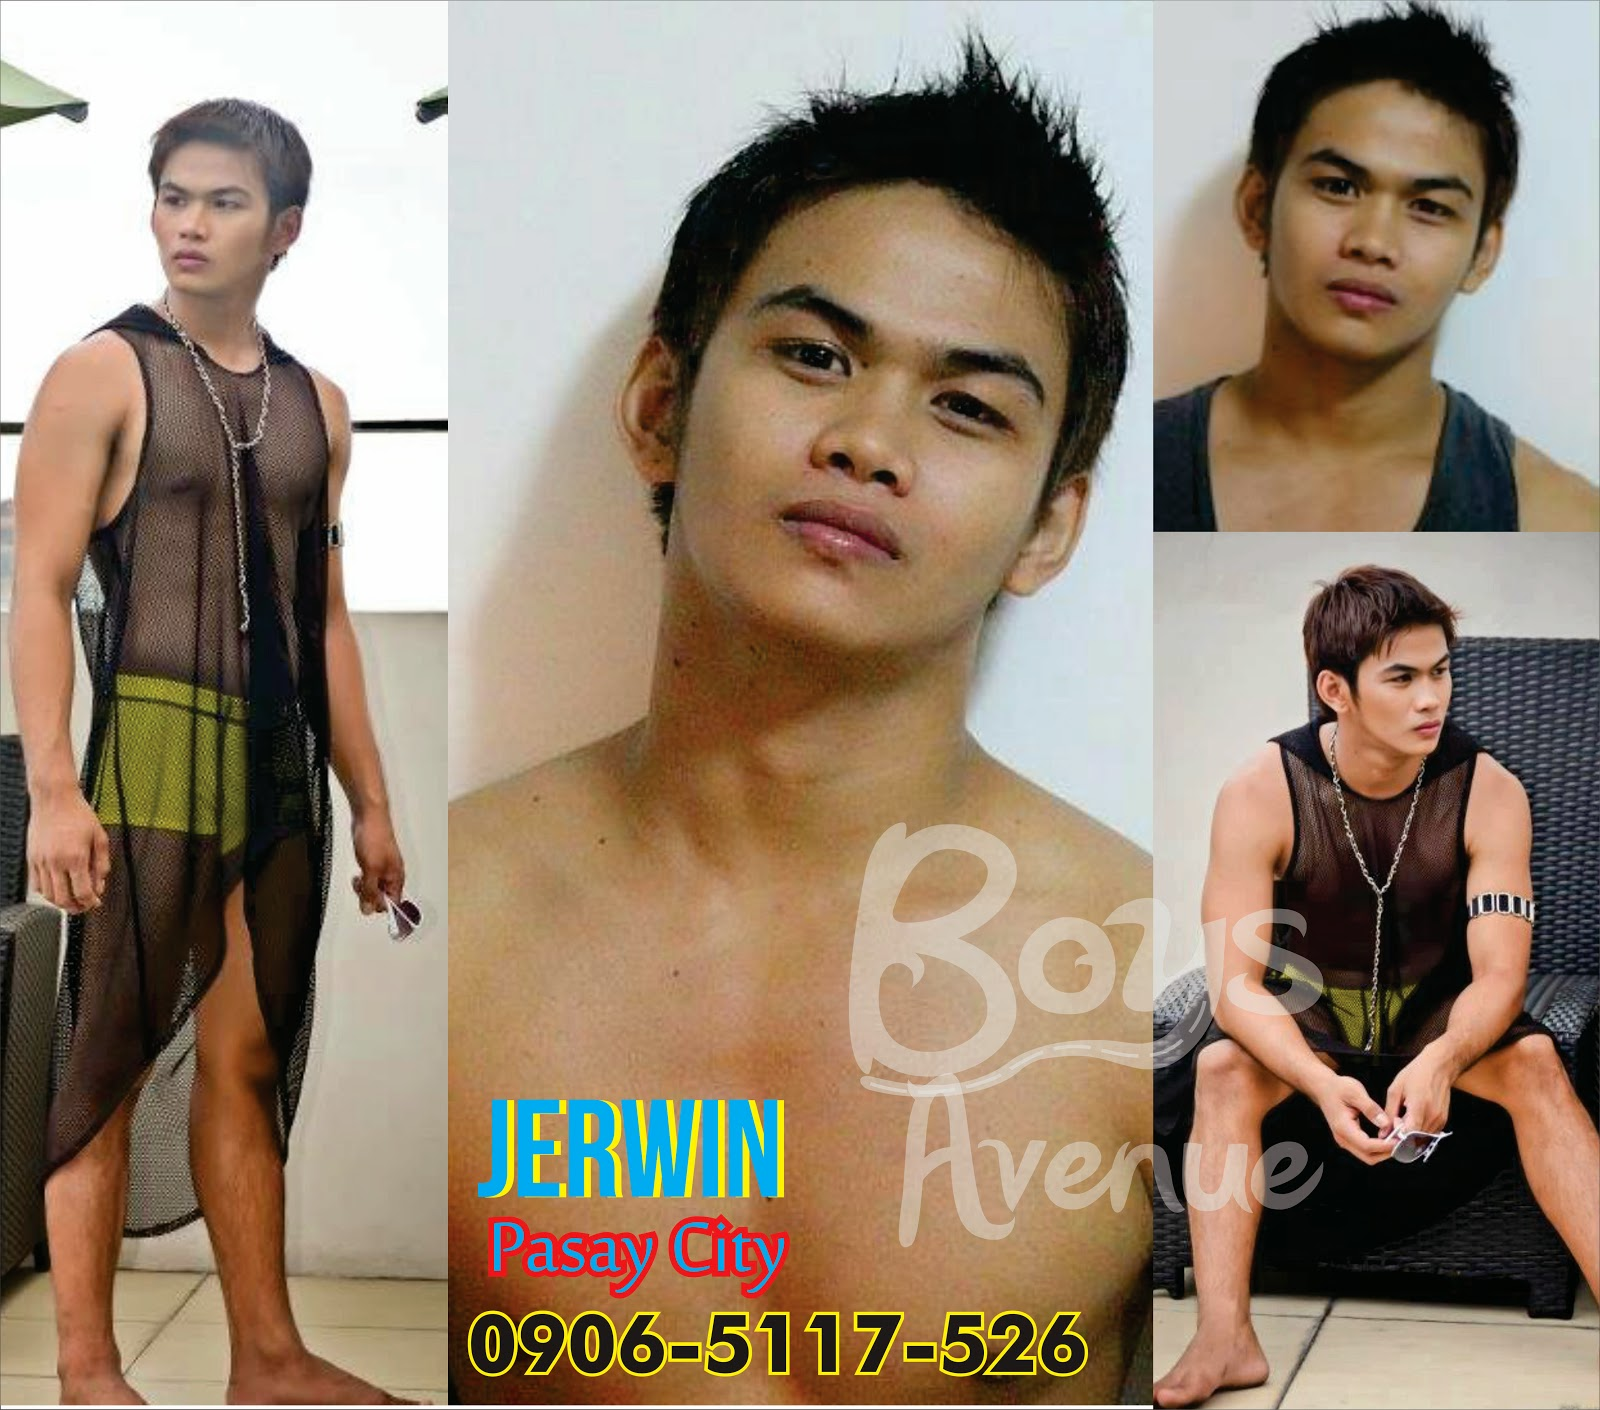 http://www.boysavenuemodel.com/search/label/jerwin